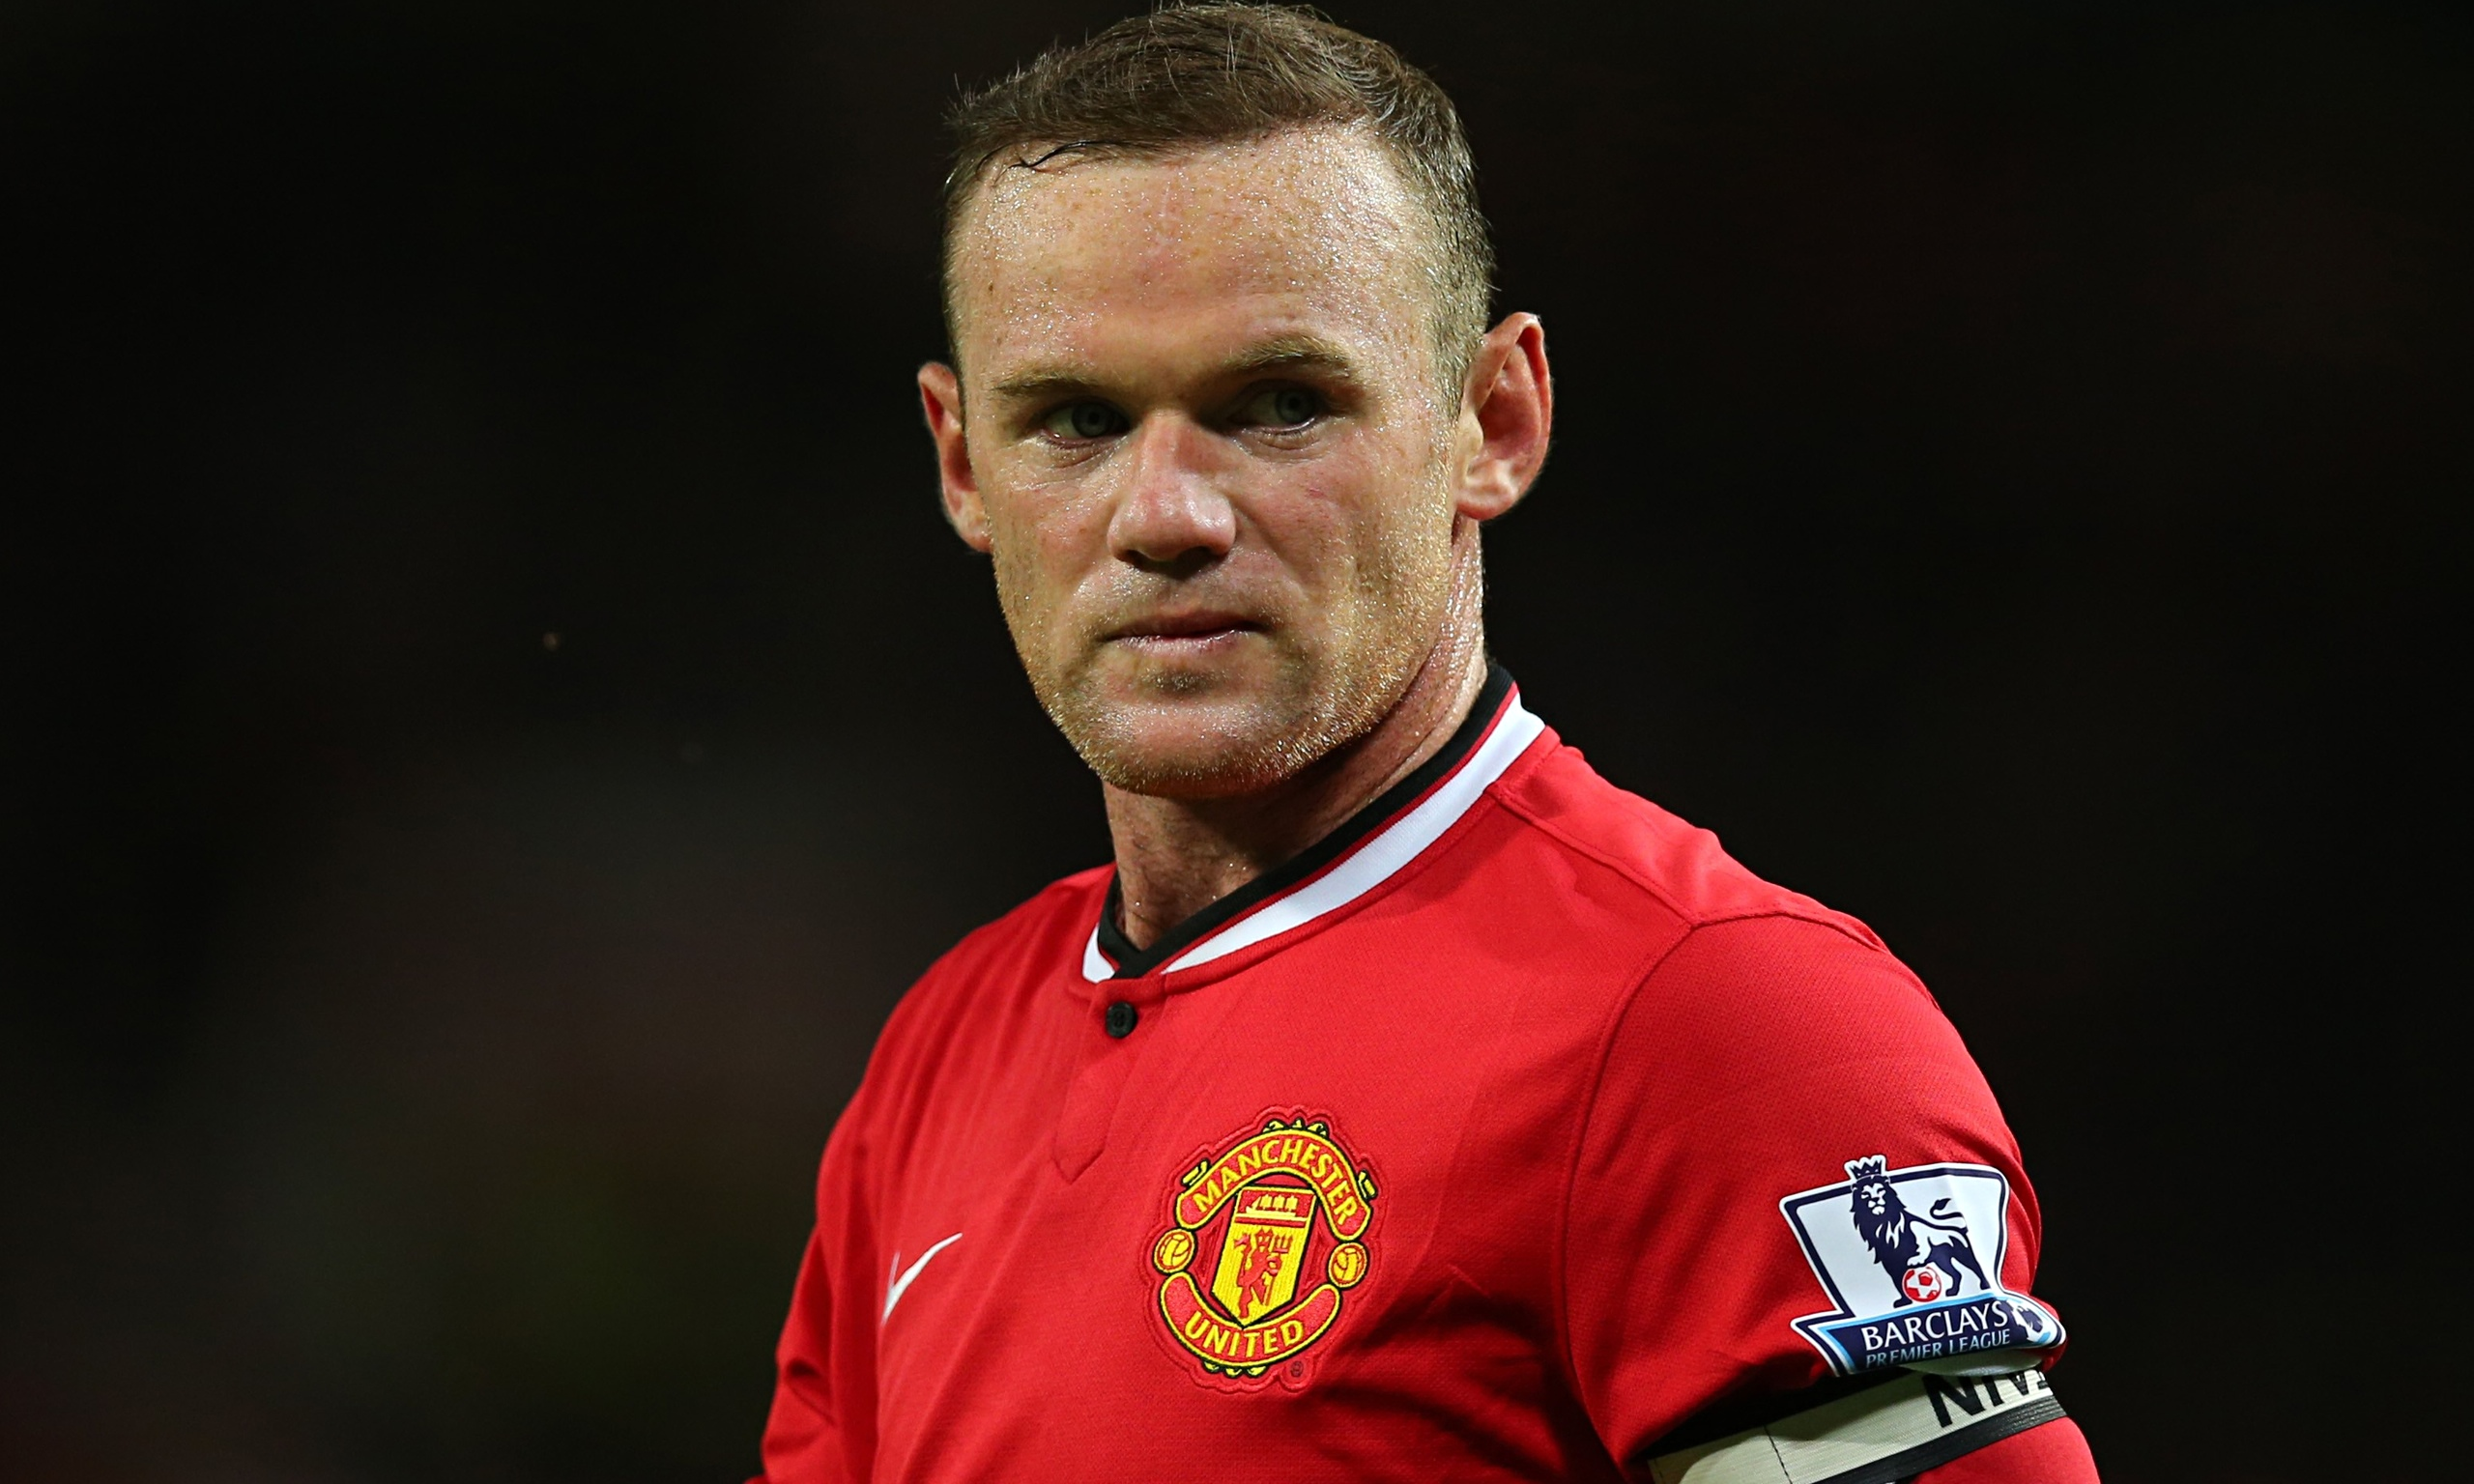 http://static.guim.co.uk/sys-images/Guardian/Pix/pictures/2014/8/13/1407931915328/Wayne-Rooney-014.jpg